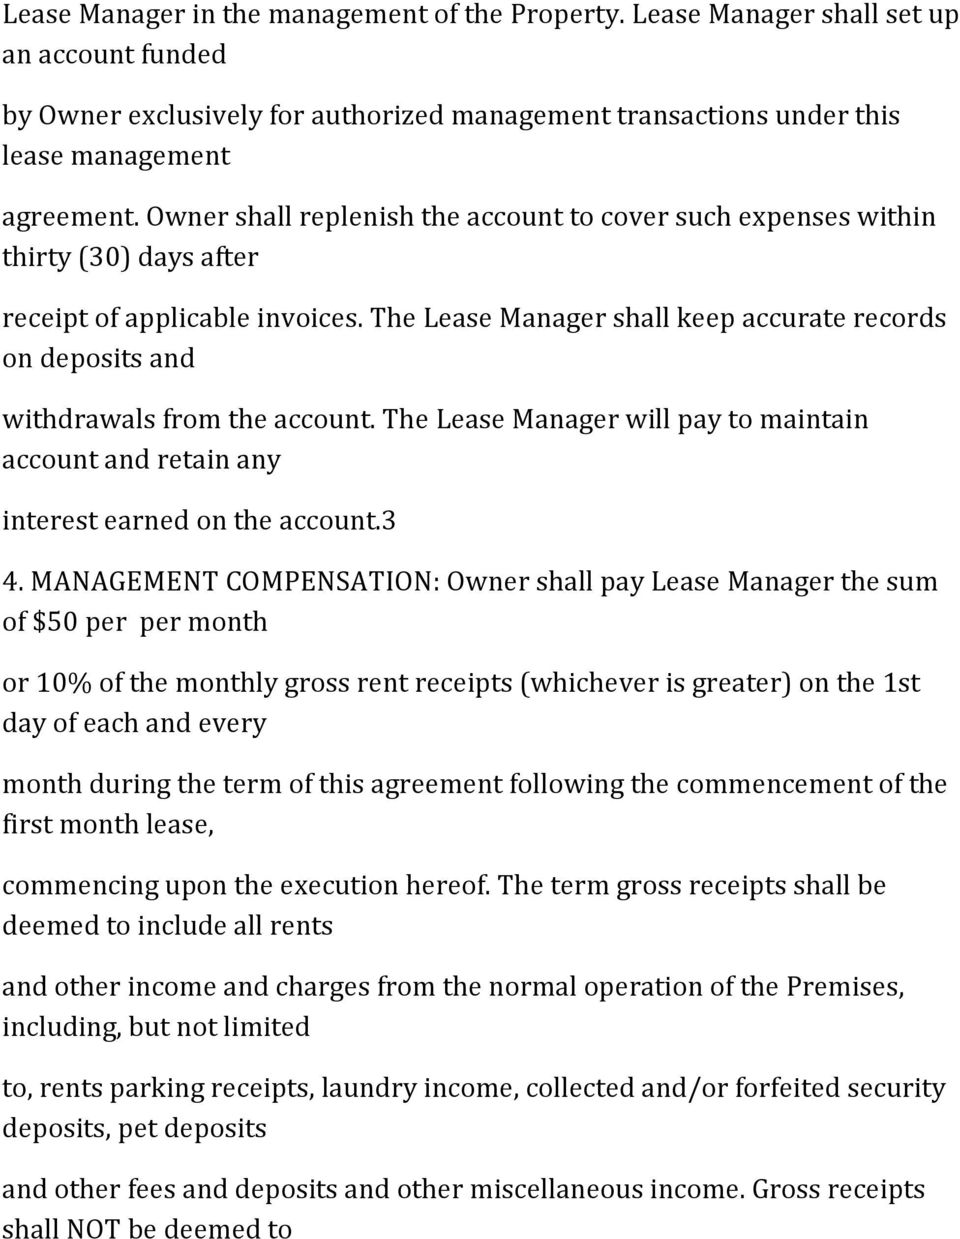 The Lease Manager shall keep accurate records on deposits and withdrawals from the account. The Lease Manager will pay to maintain account and retain any interest earned on the account.3 4.